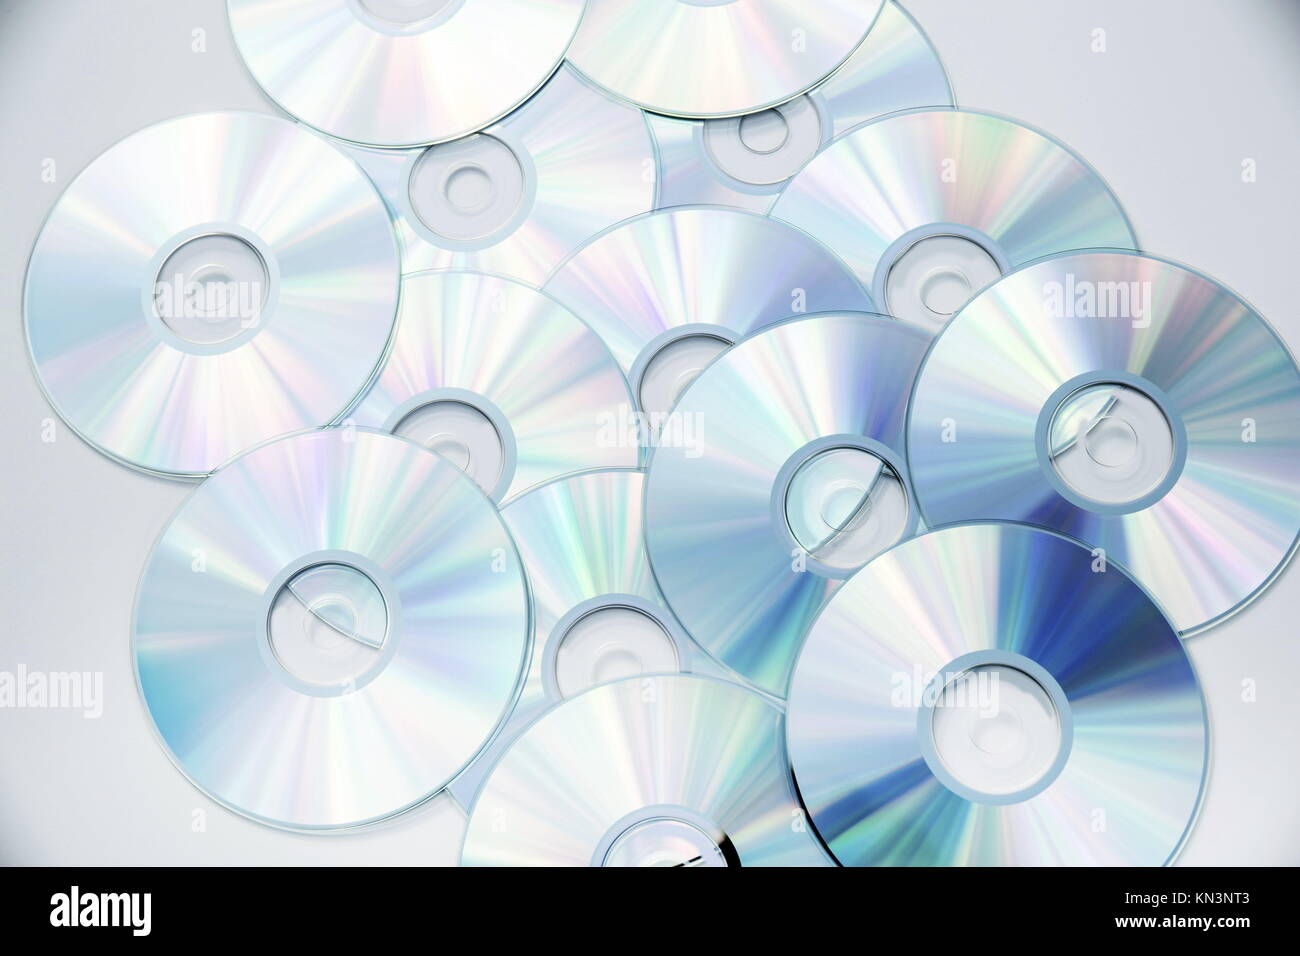 Optical Data storage with a bright and vivid color spectrum. - Stock Image